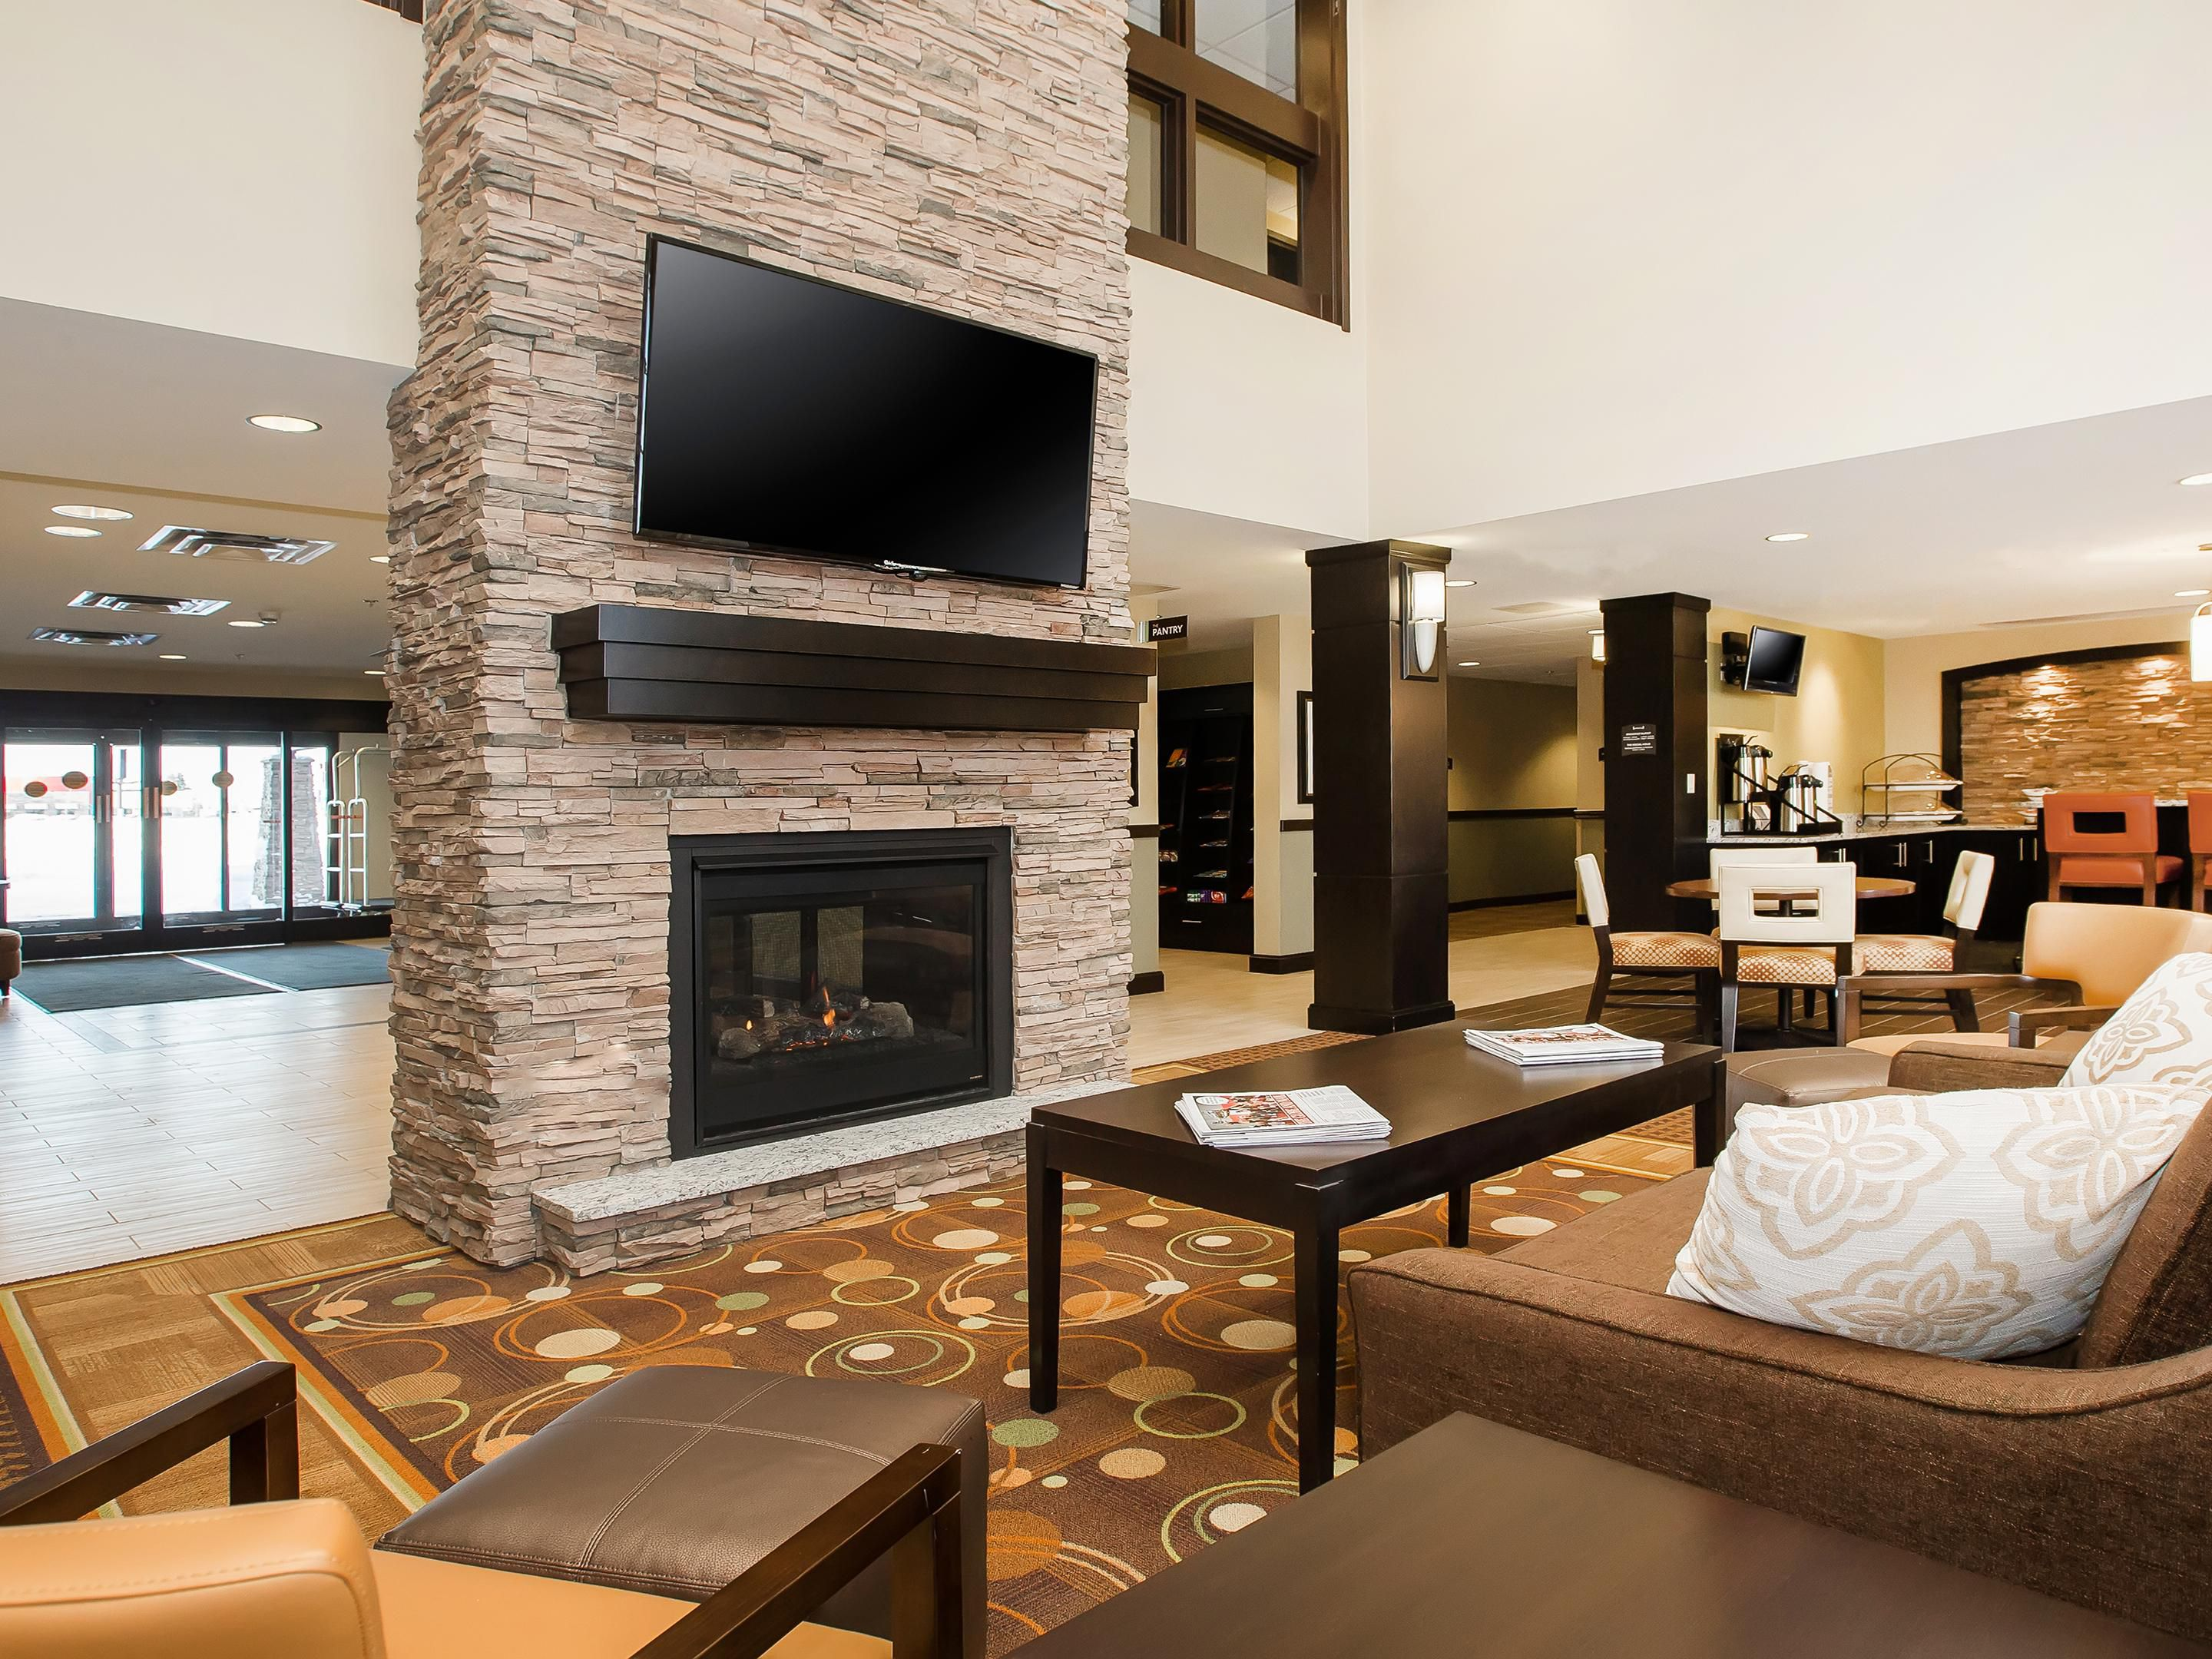 Staybridge Suites West Edmonton Extended Stay Hotel In Canada With Full Kitchen